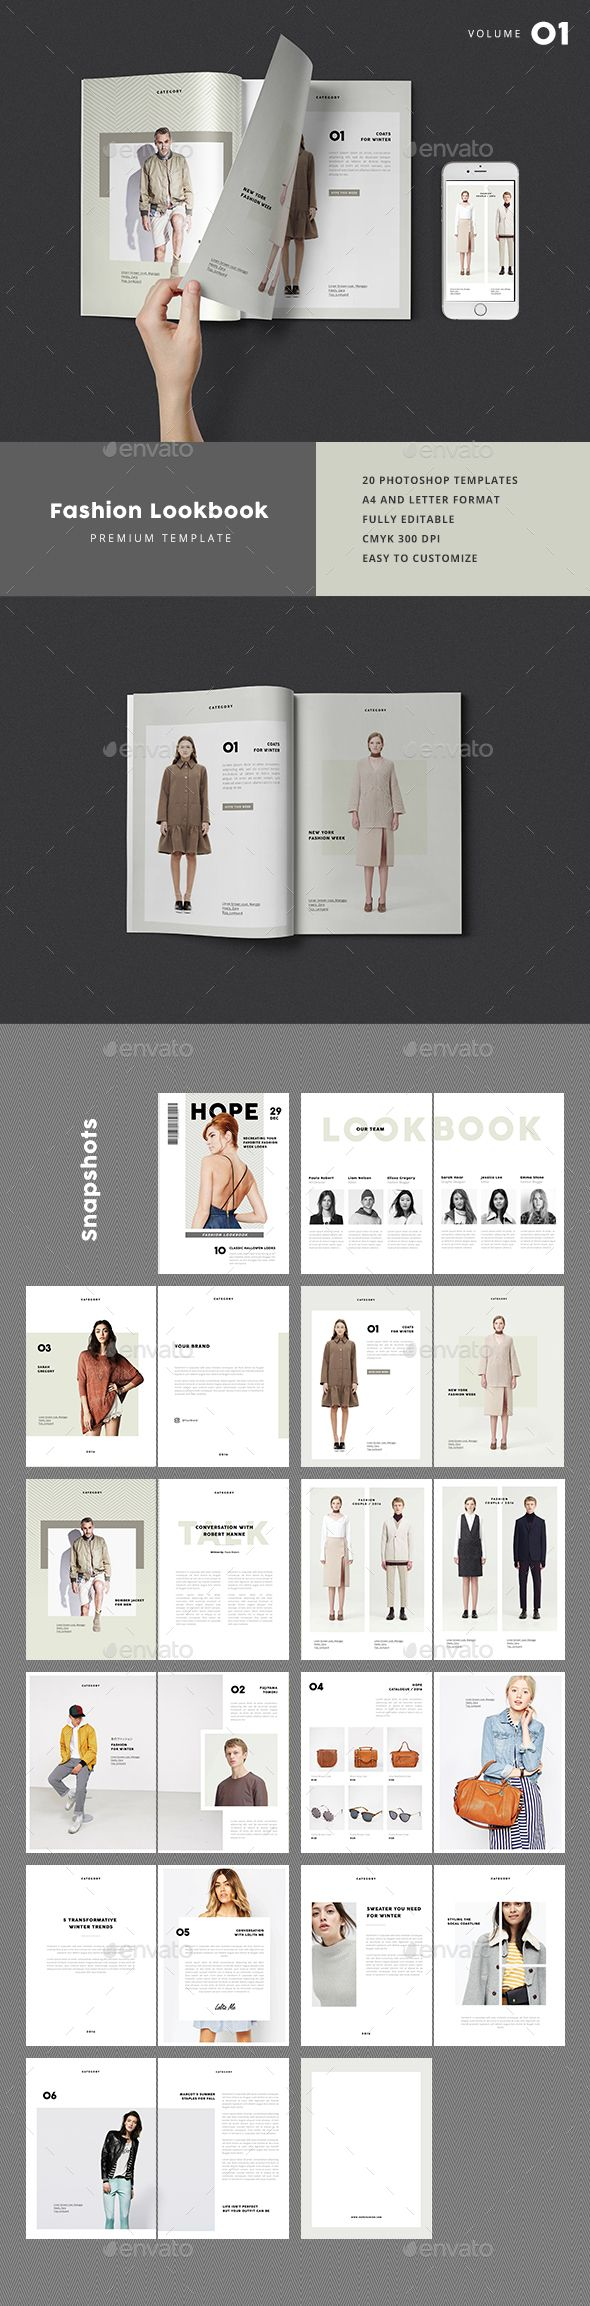 Fashion Lookbook Template PSD A4 and